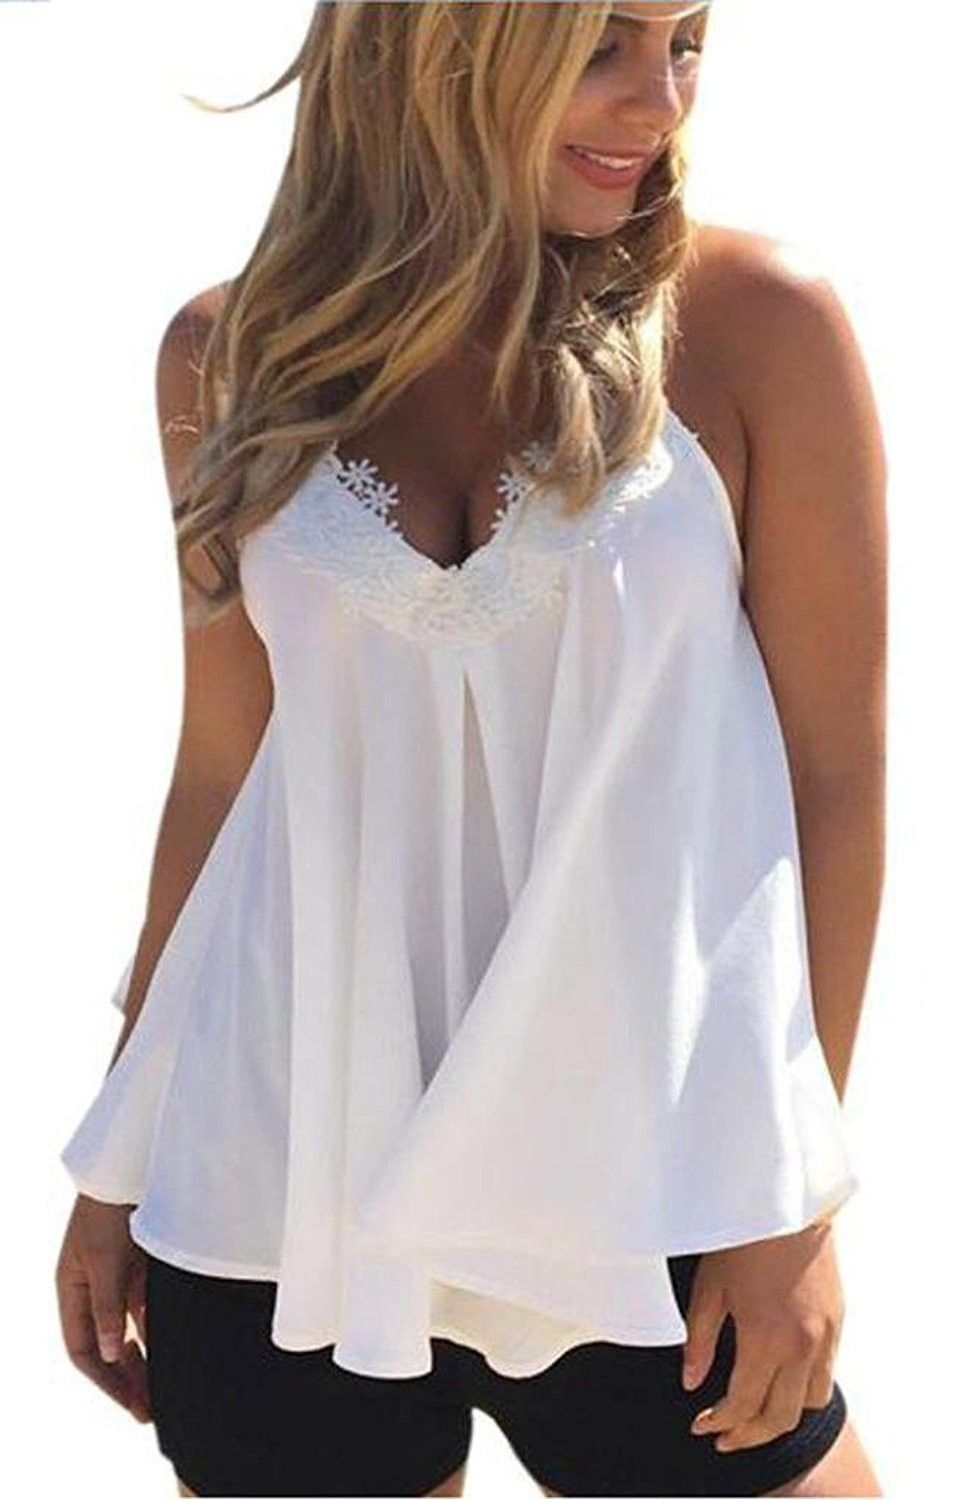 3d1ba4b1f4 Womens Loose Lace Crochet Sleeveless Chiffon Blouse Flowy Tank Top Shirt -  White - CO18340LEK9,Women's Clothing, Tops & Tees, Tanks & Camis #women # fashion ...